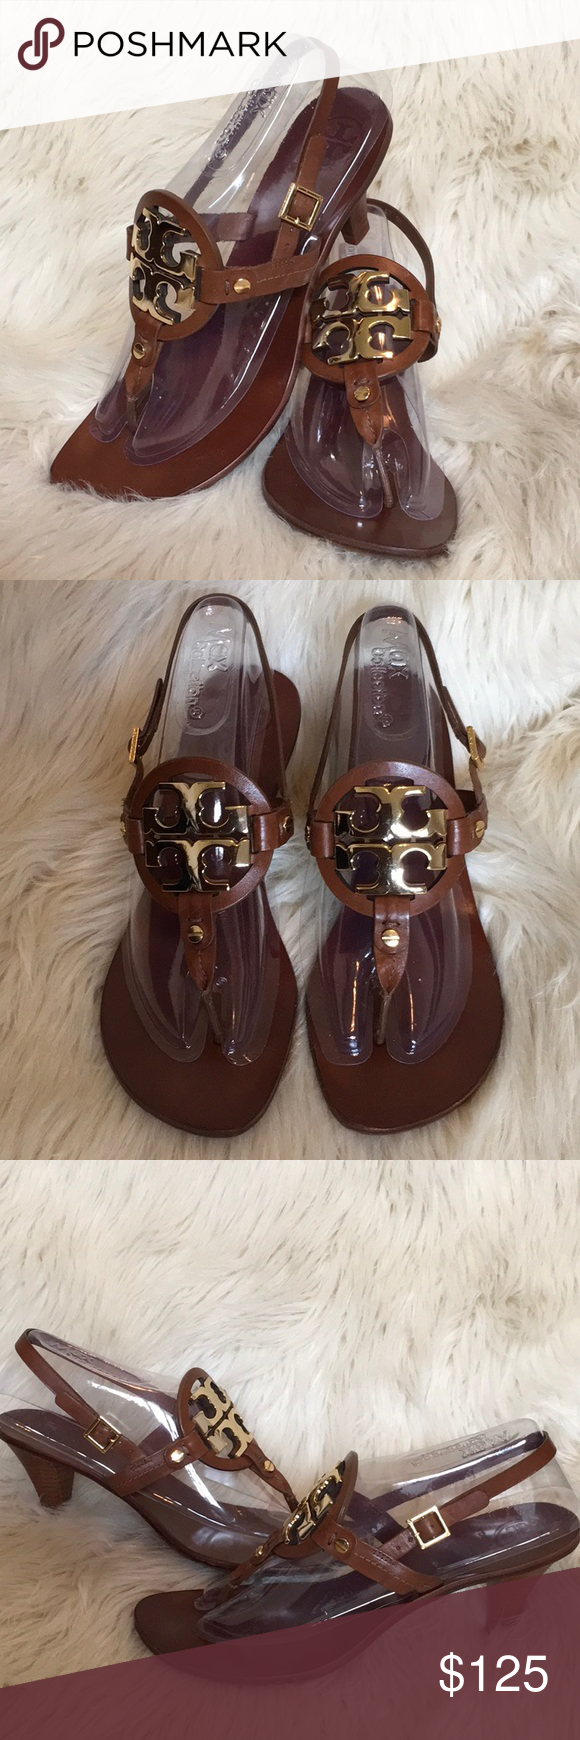 76105a212415 TORY BURCH Holly Brown Leather Logo Sandals EUC 9M TORY BURCH Holly Brown  Milled Leather Logo